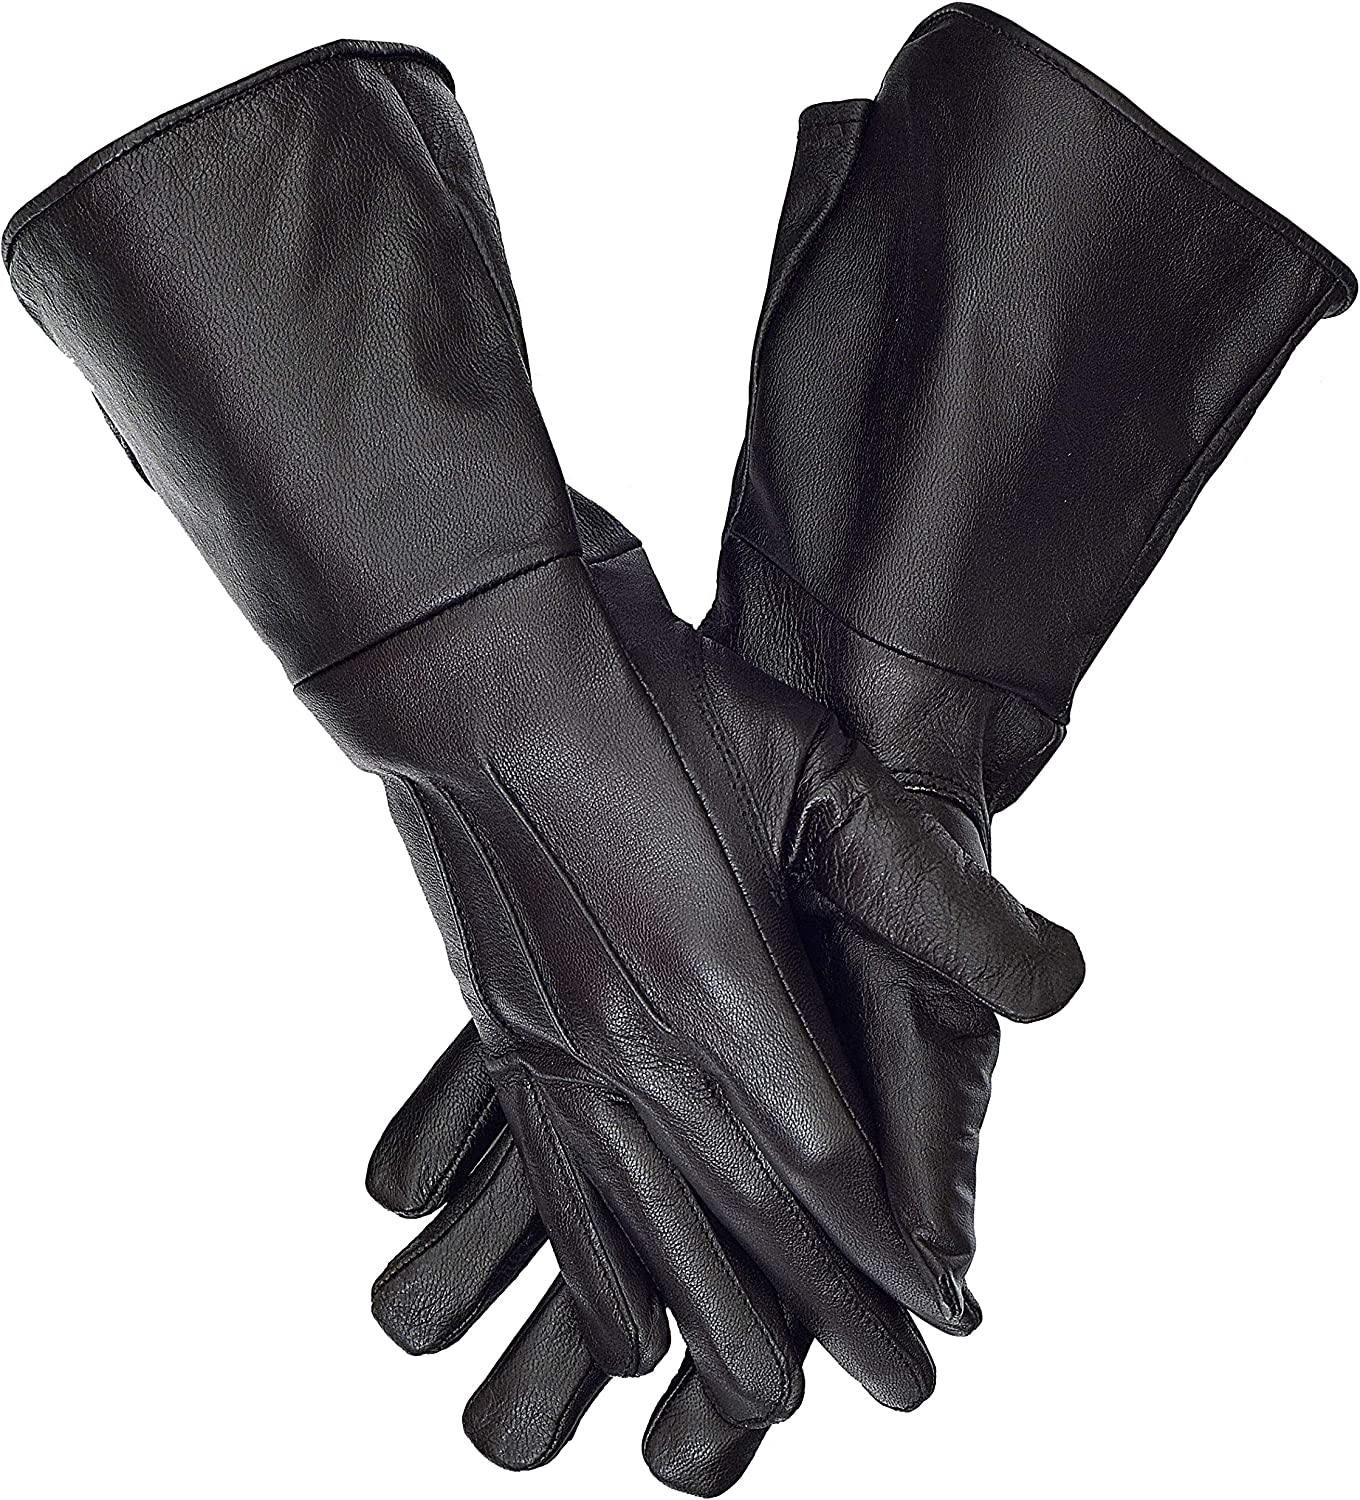 Gauntlets Medieval Long Cuff Leather Gloves